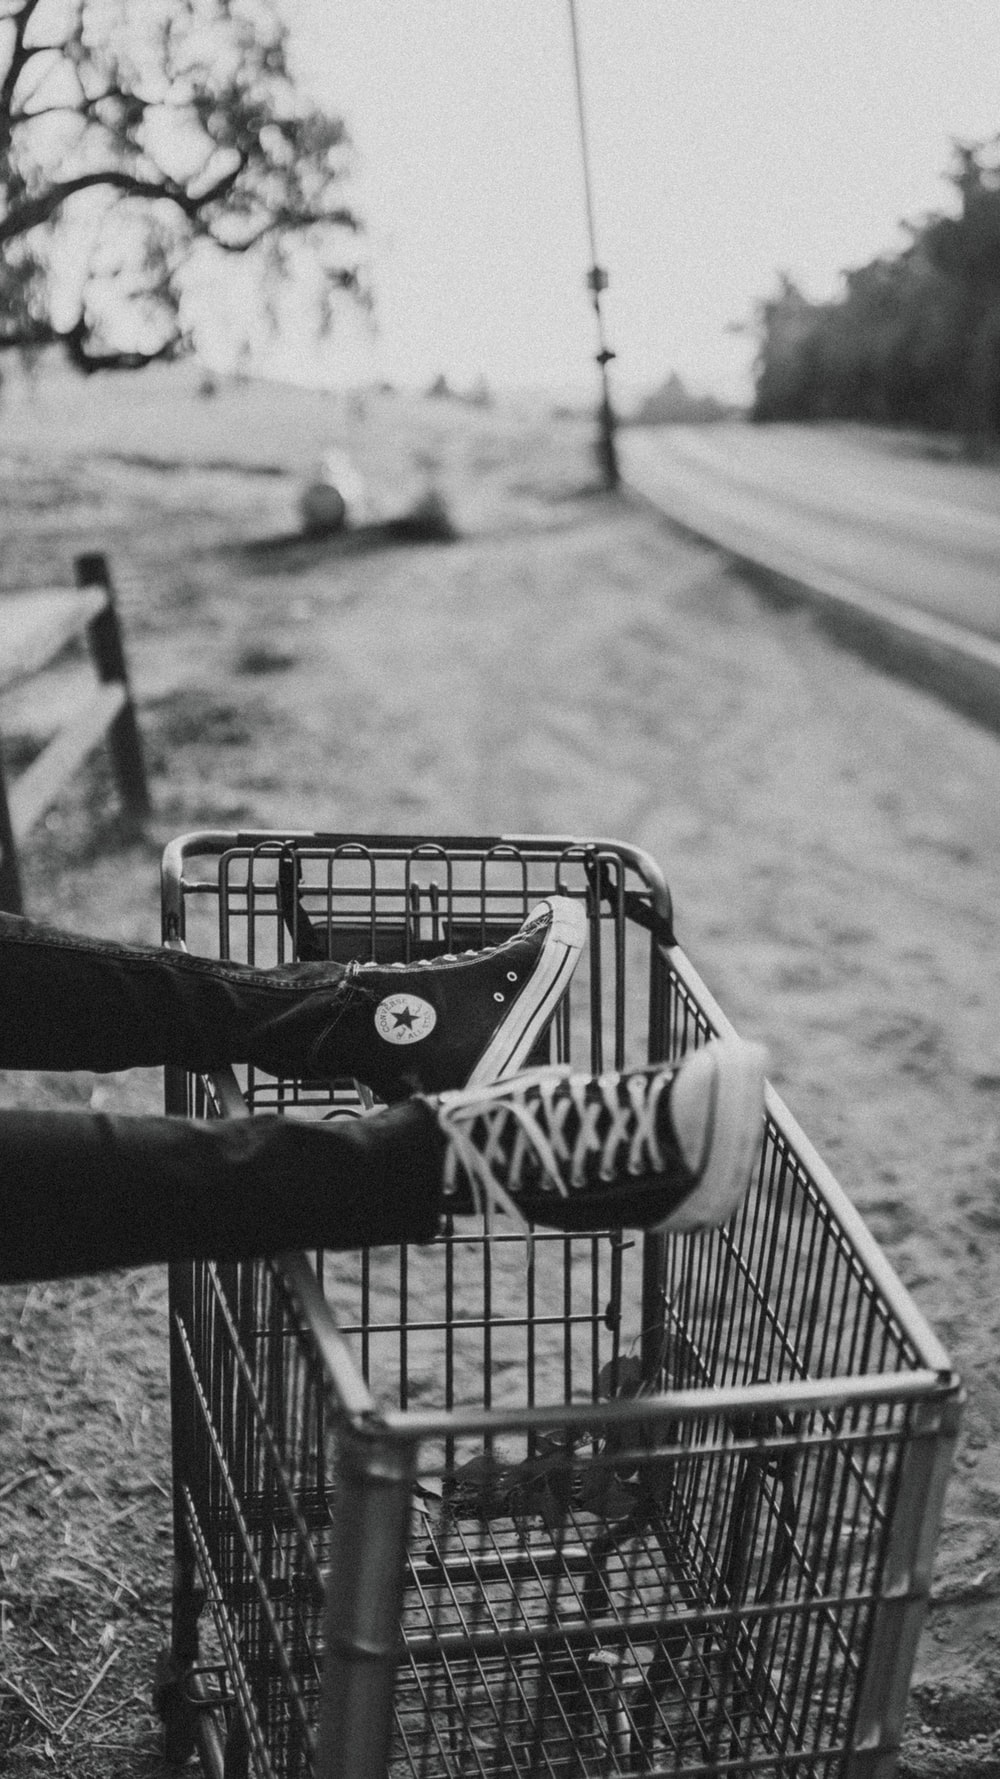 grayscale photo of person foot on metal grocery cart